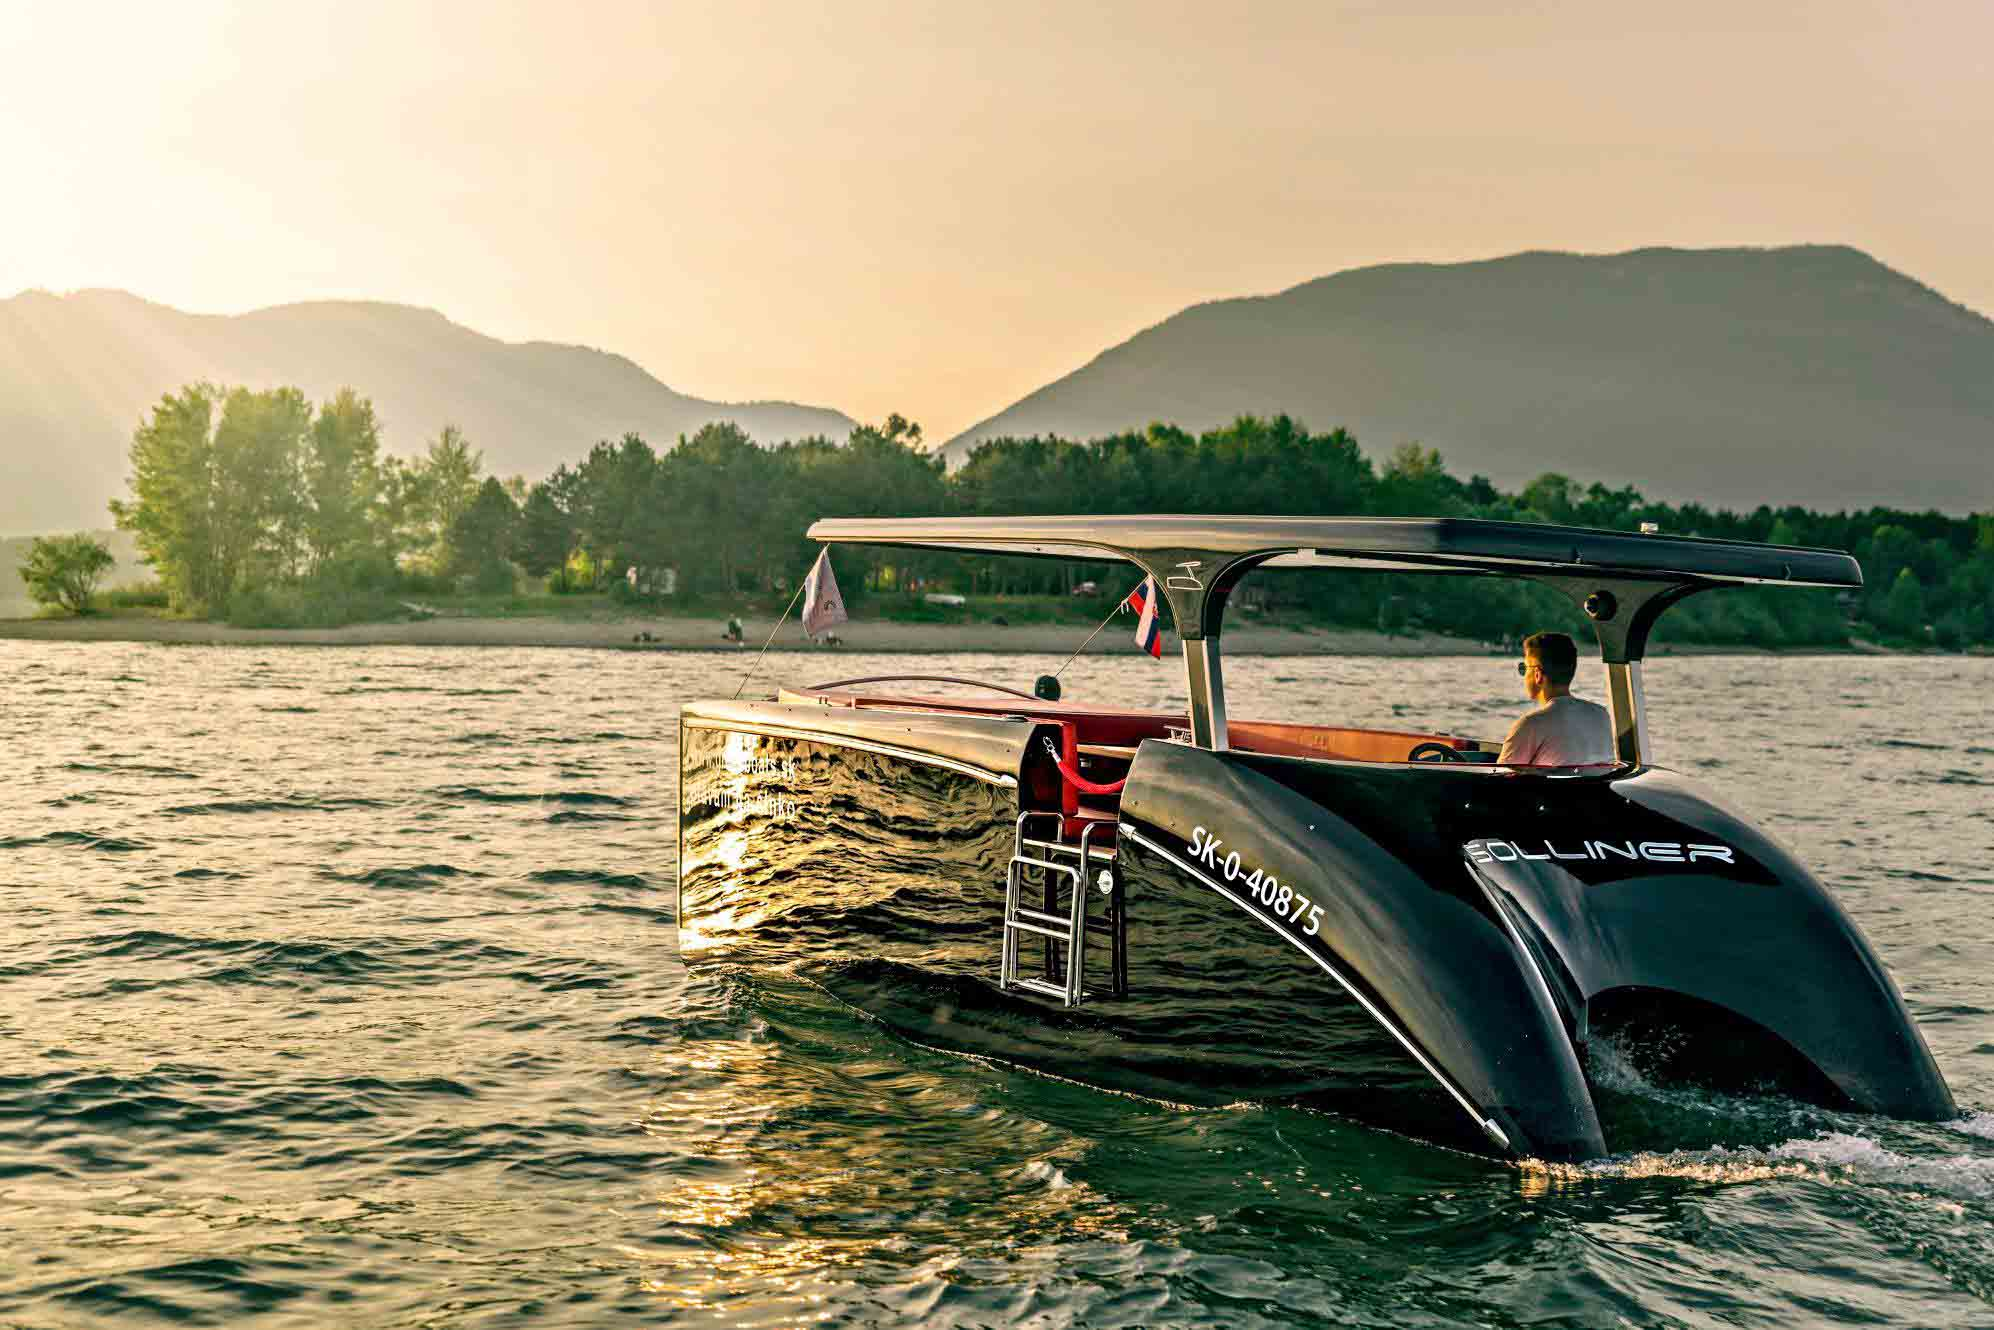 The New AZUL zero, Ireland's first and only Electric & Solar Powered Boat